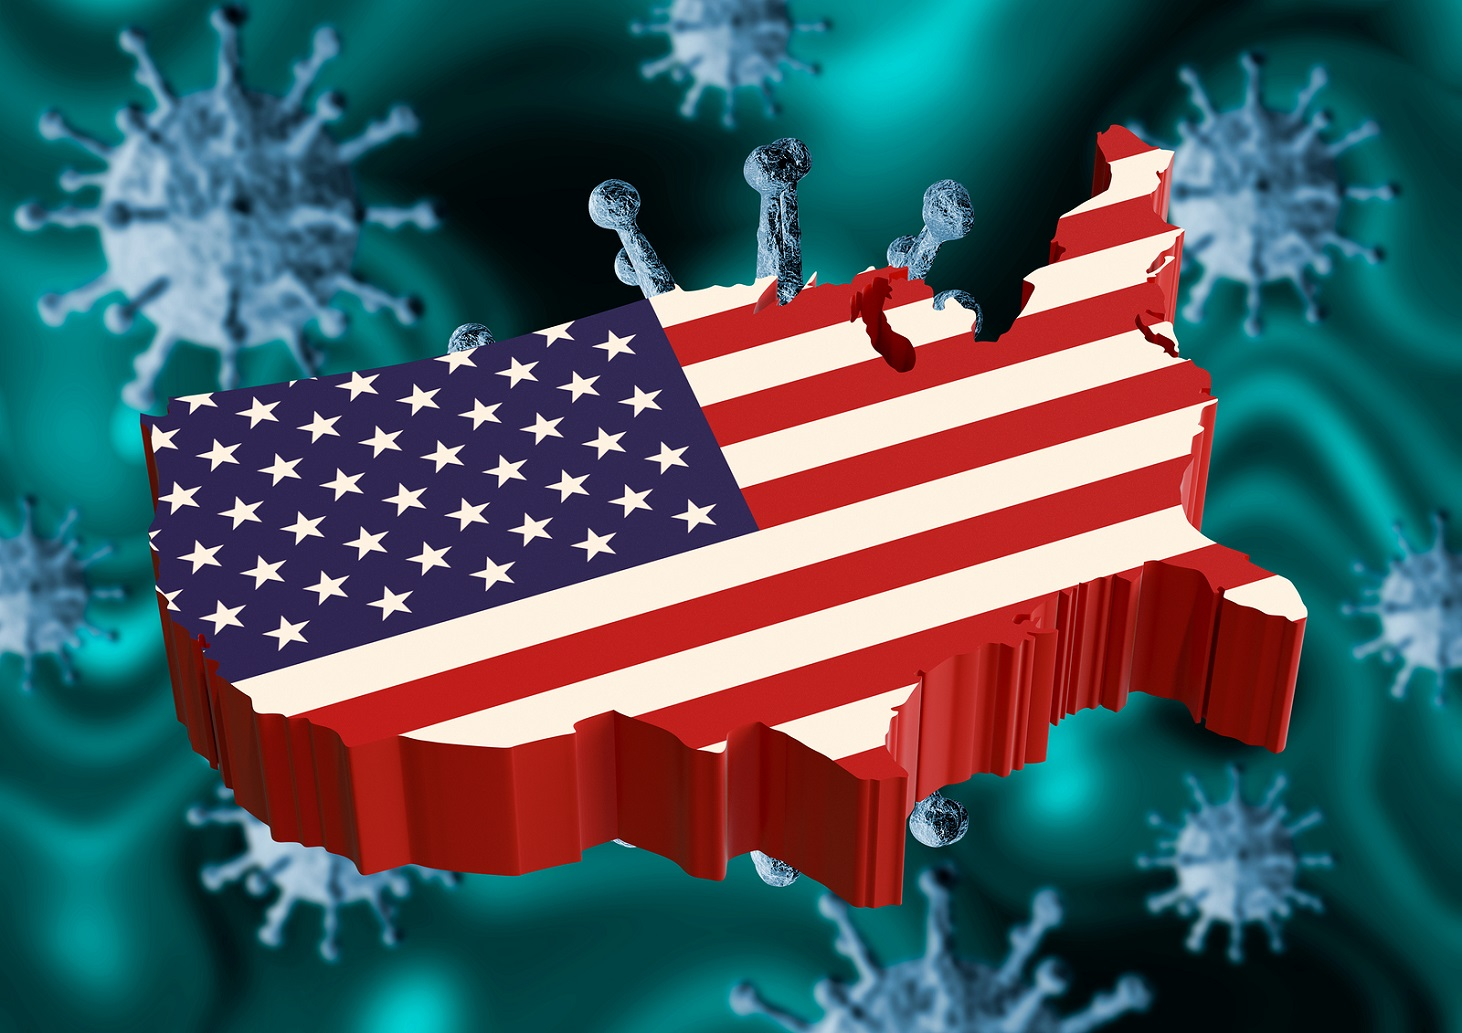 Coronavirus And Usa Flag, A Virus Pandemic Started In The Chines